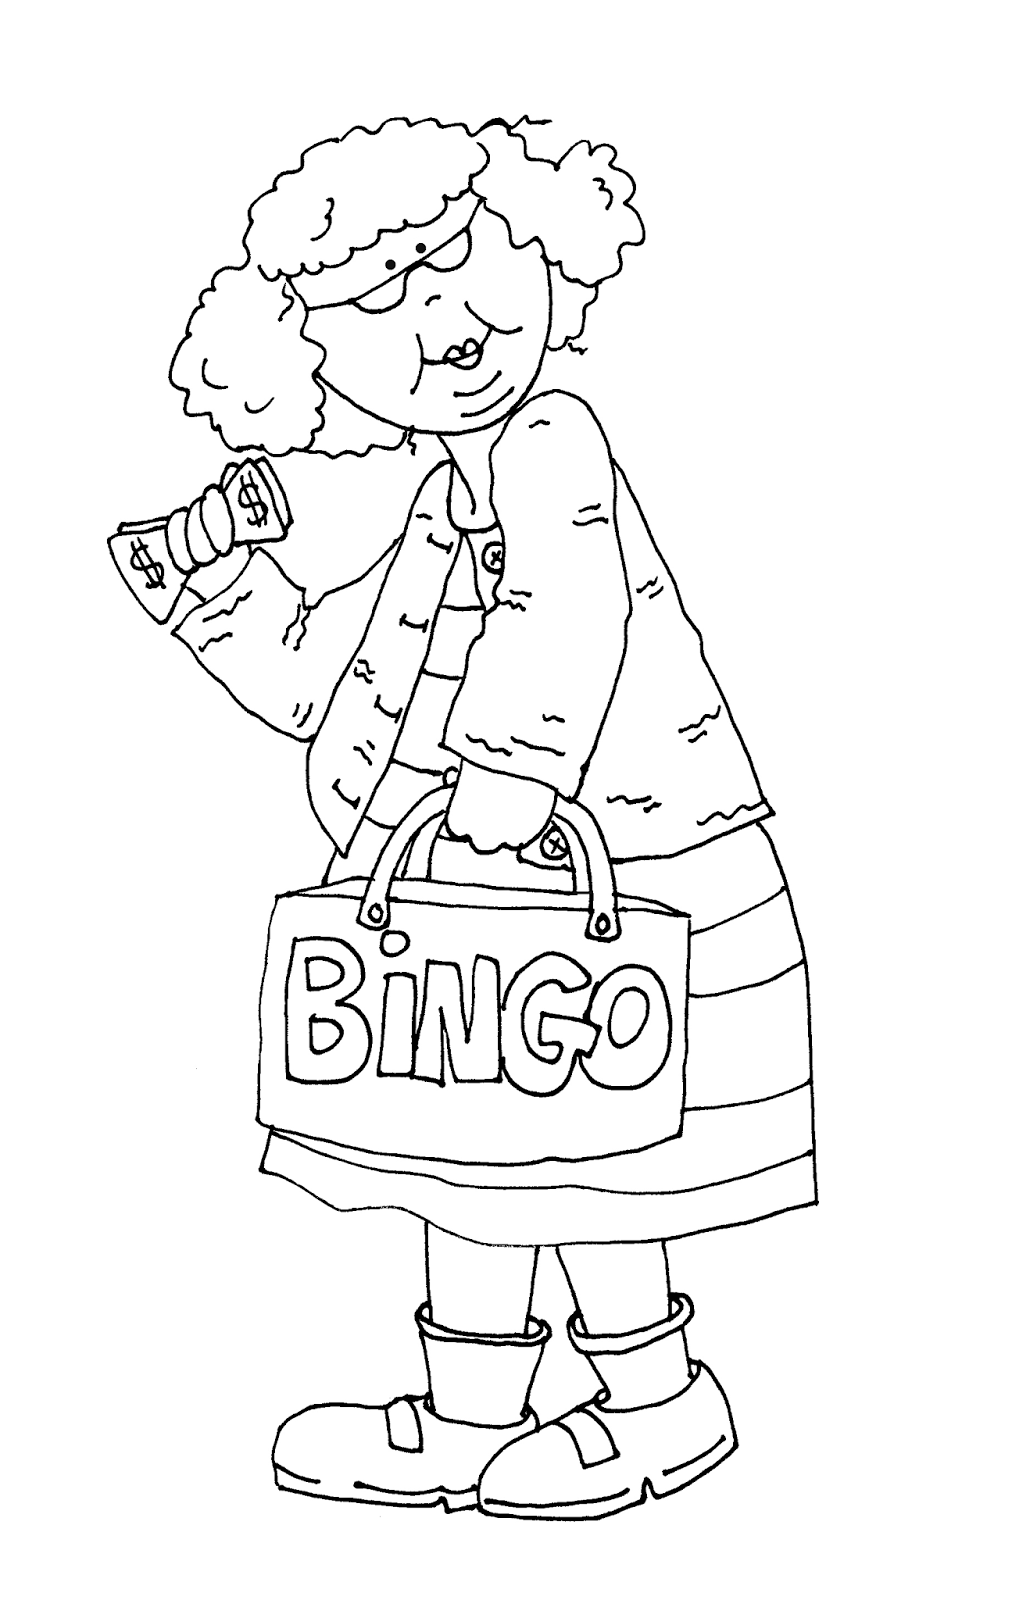 Bingo+Granny.png (1012×1600) | CROSS STICH & EMBROIDERY | Pinterest ...